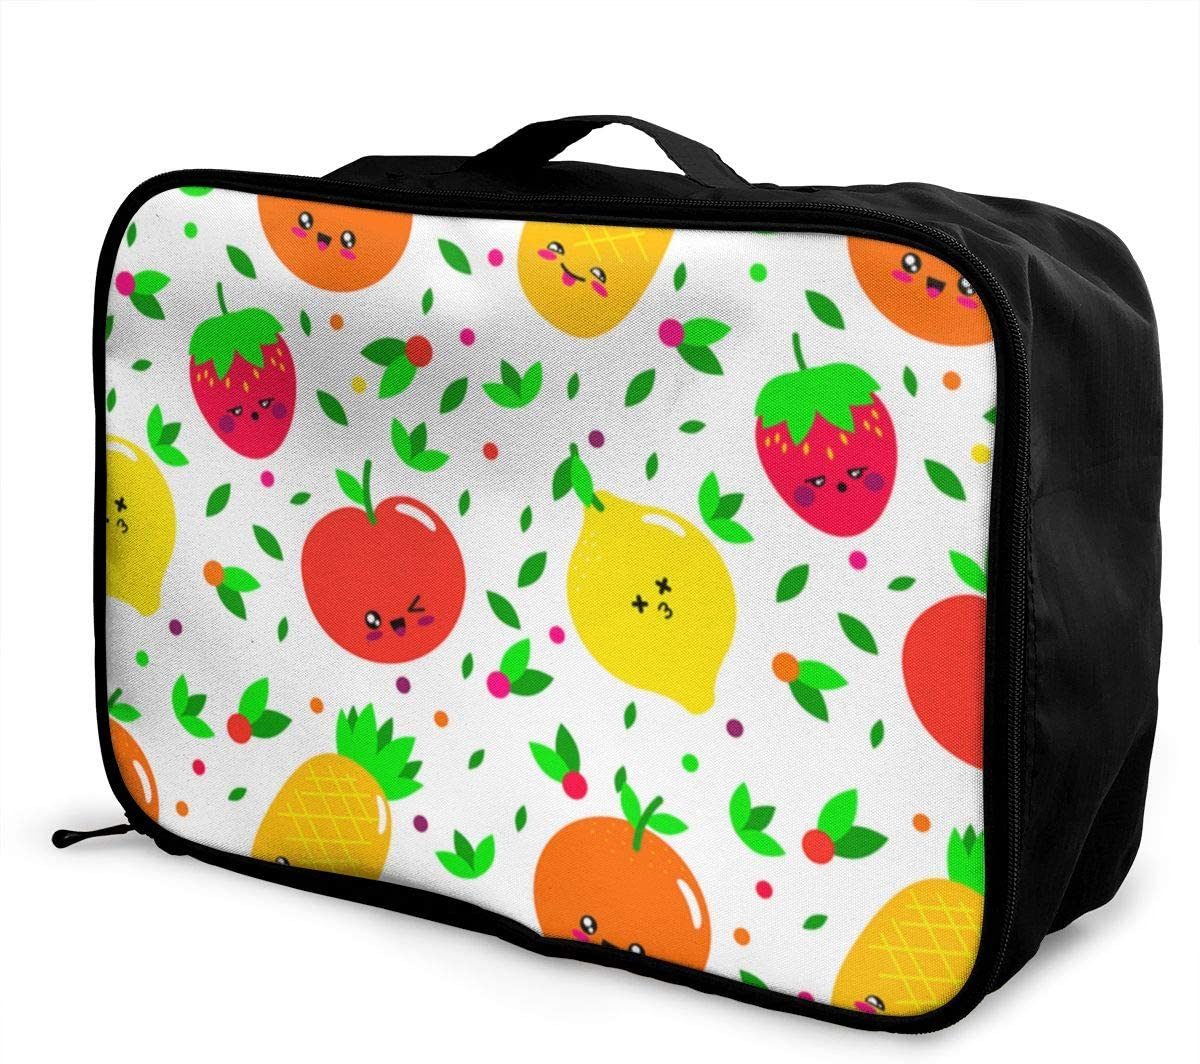 Yunshm Rejuvenation Of Small Fresh Fruits Personalized Trolley Handbag Waterproof Unisex Large Capacity For Business Travel Storage